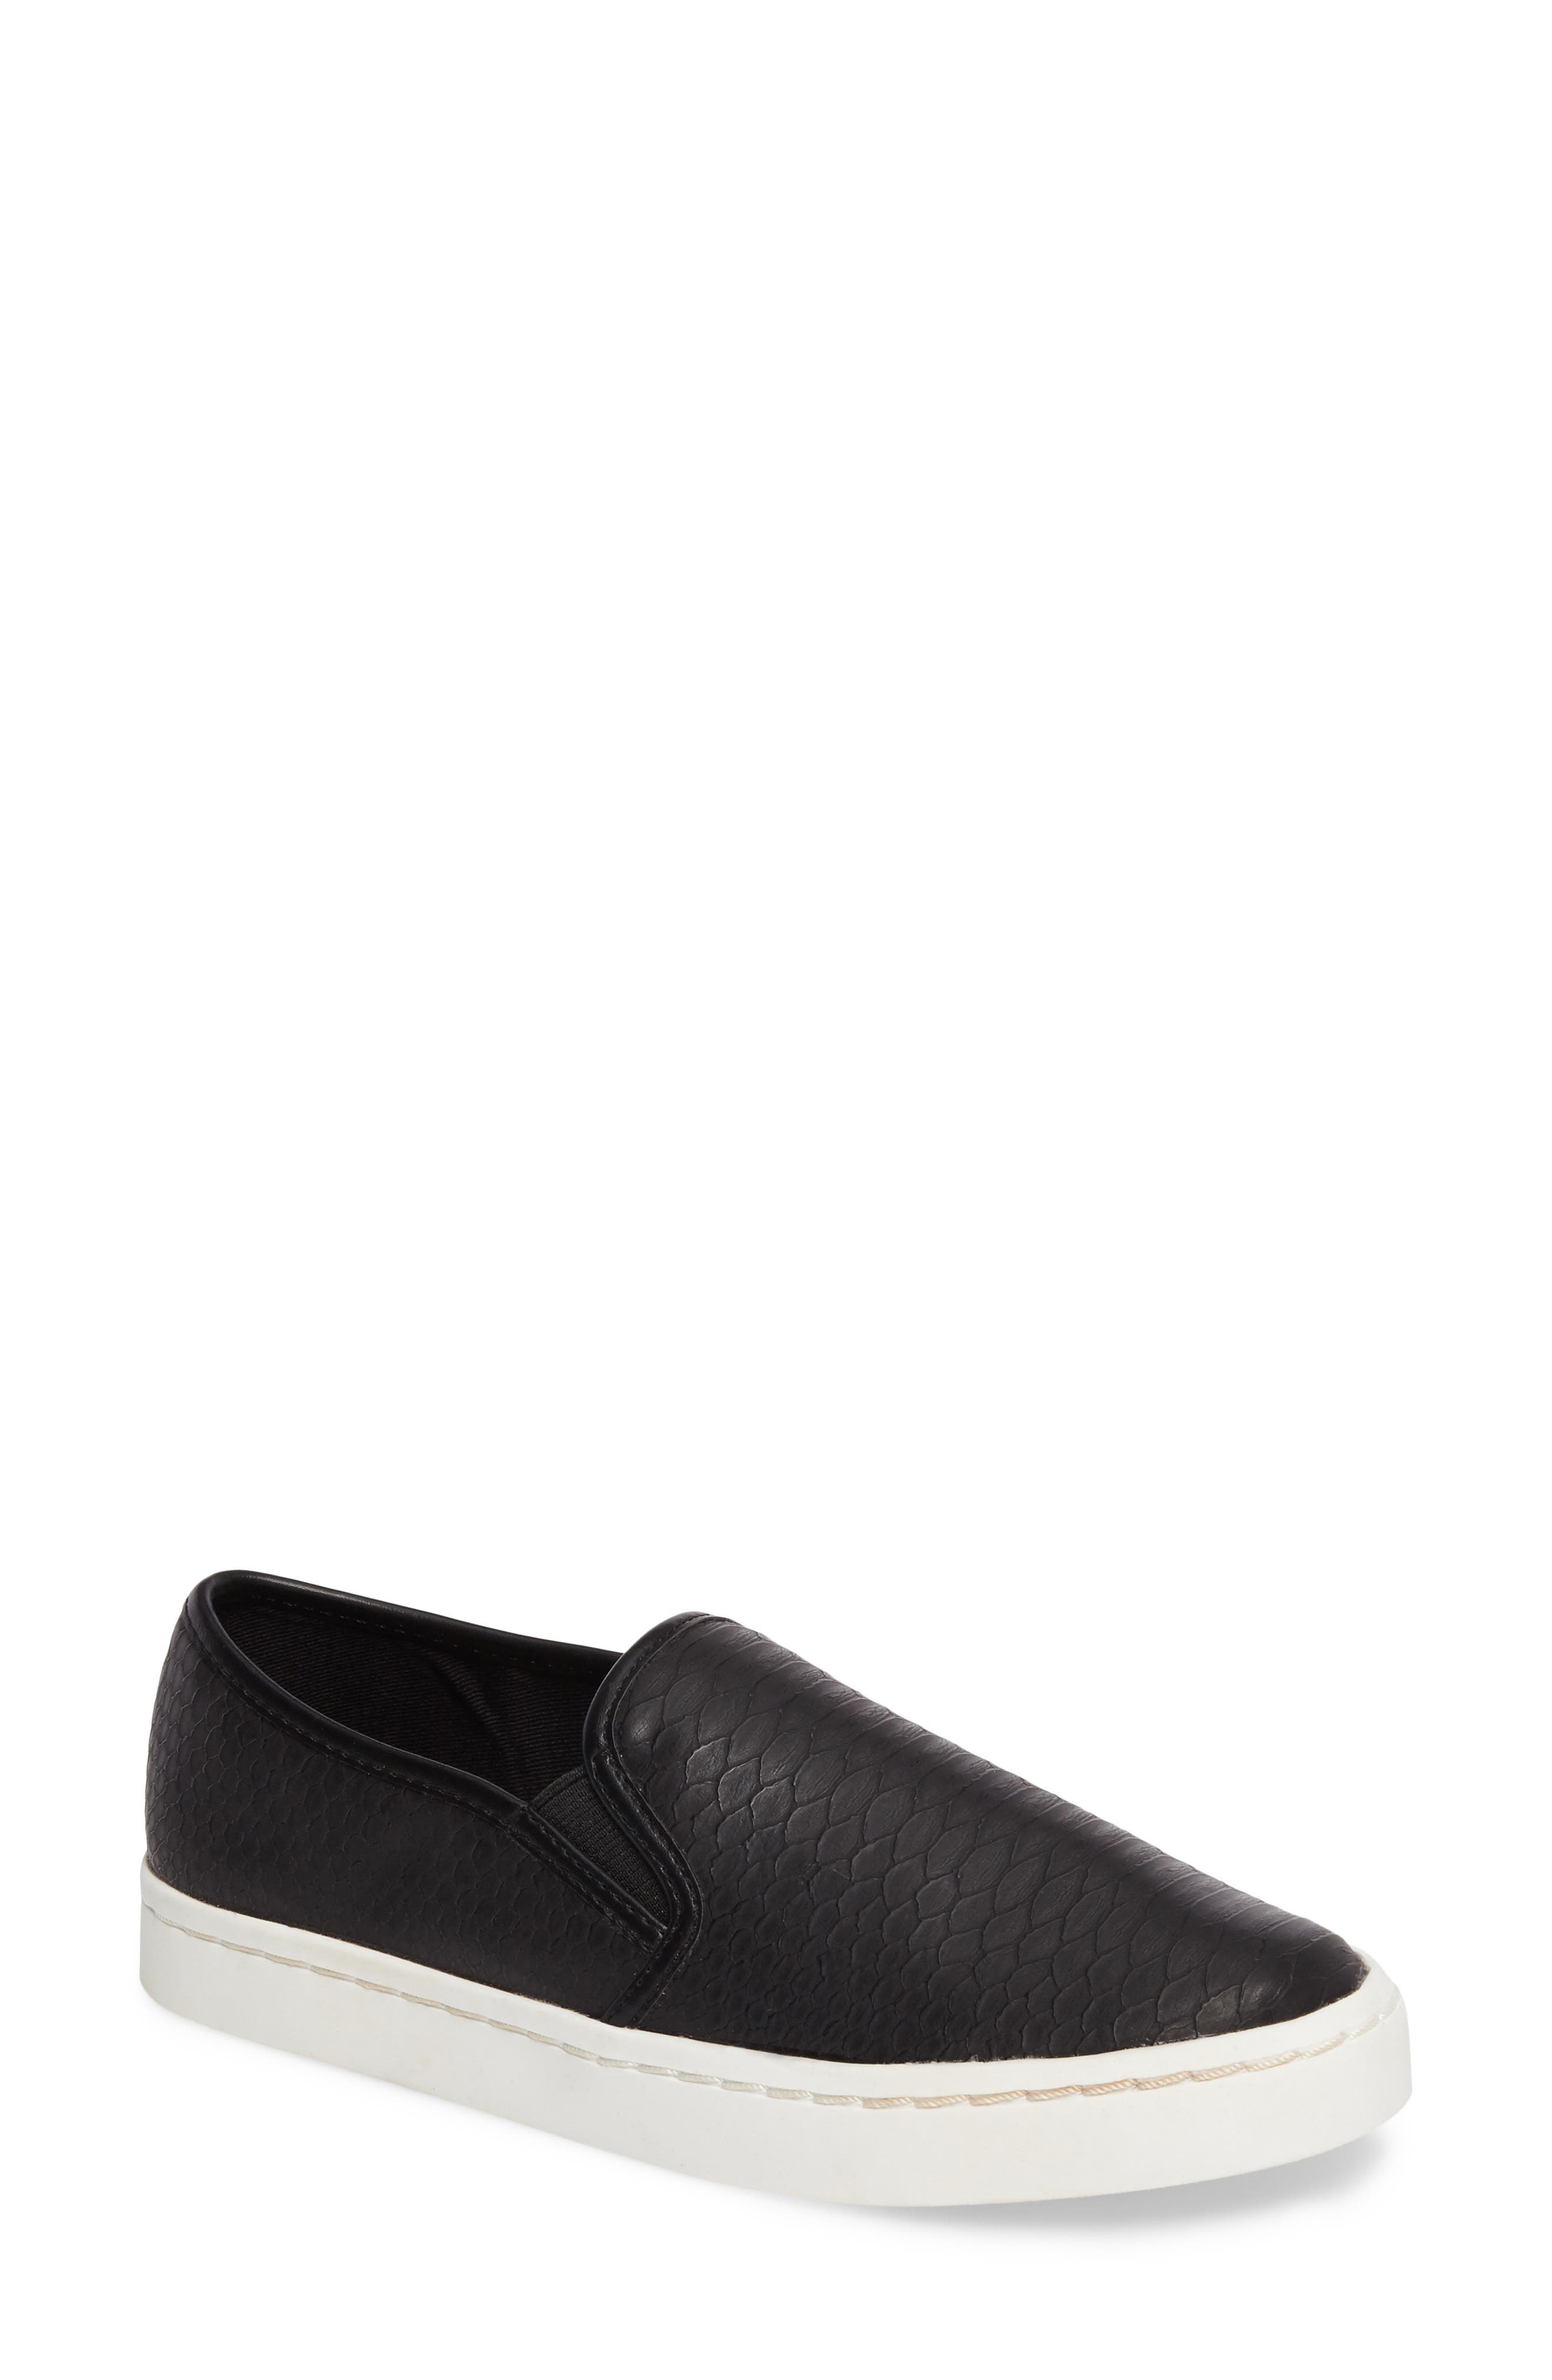 'Twiny' Slip-On Sneaker,                         Main,                         color, 005